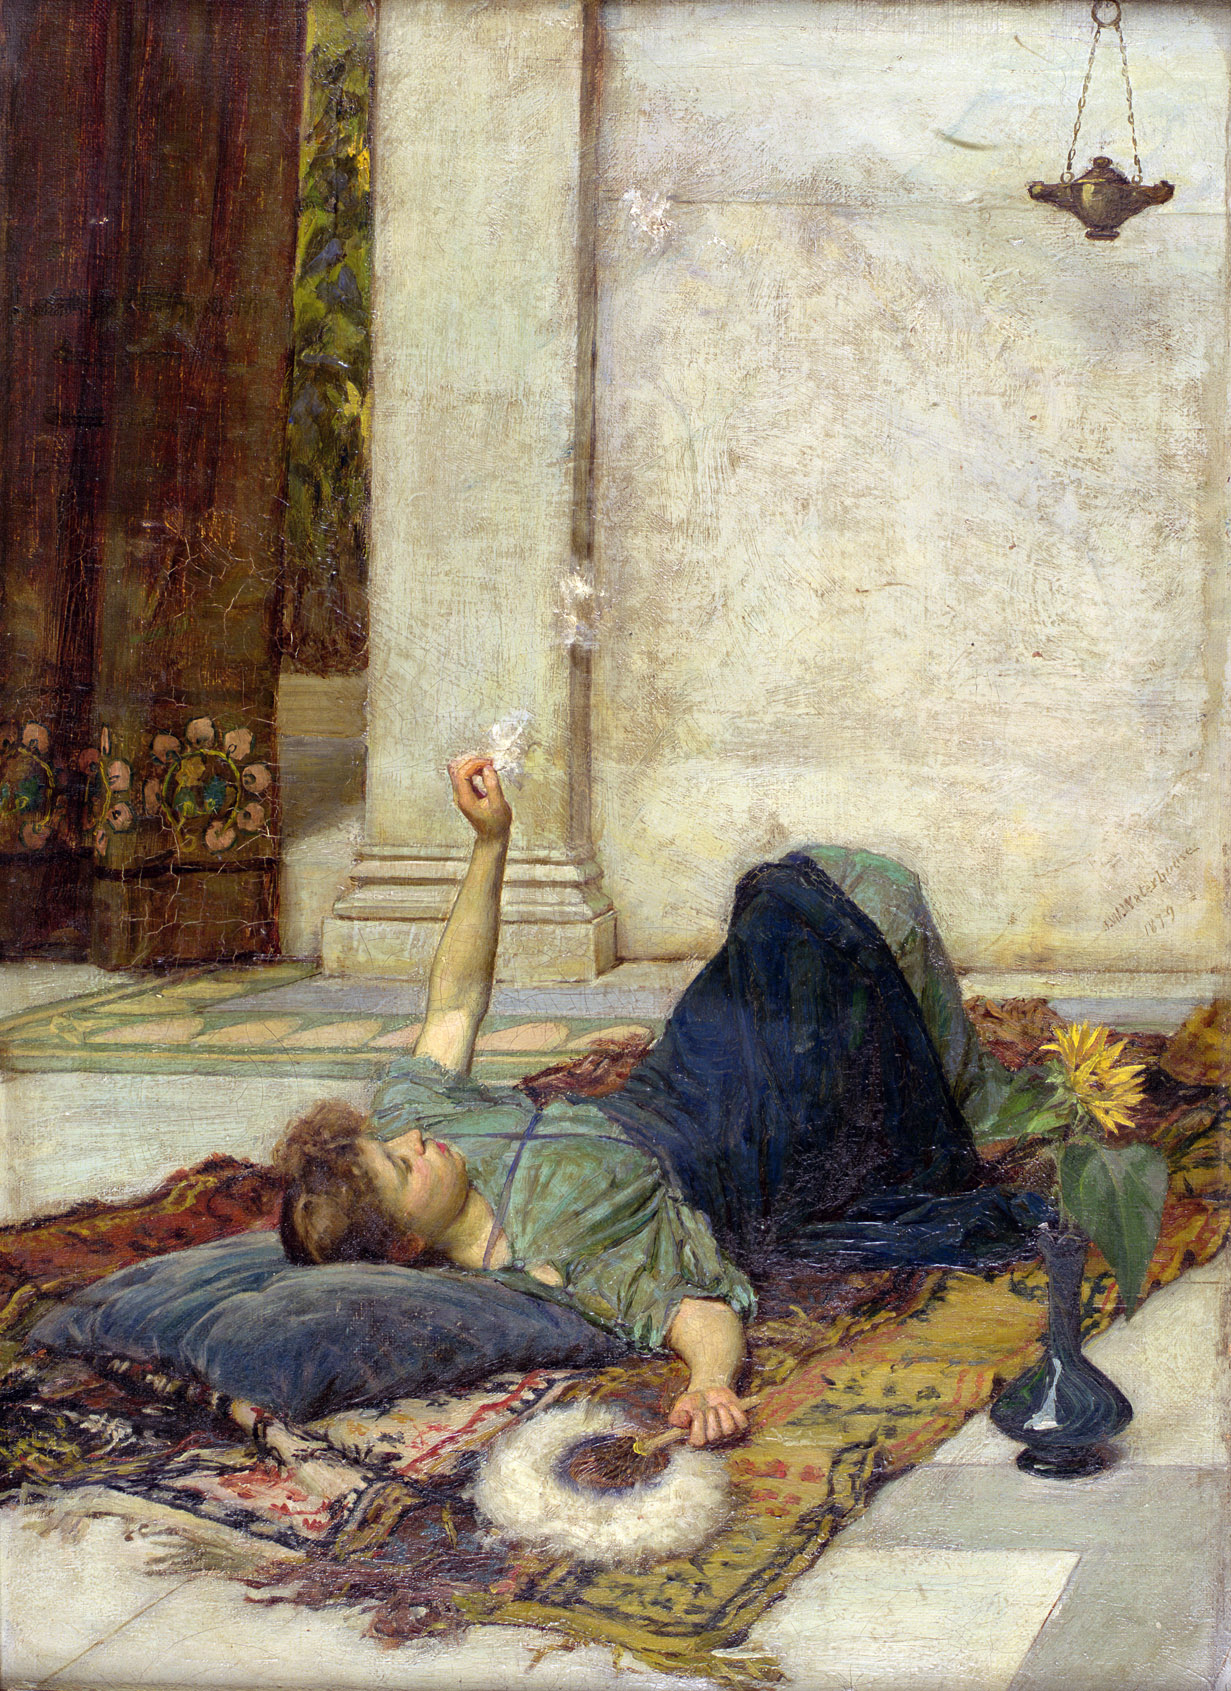 The White Feather Fan, by John William Waterhouse, 1879. Private Collection.